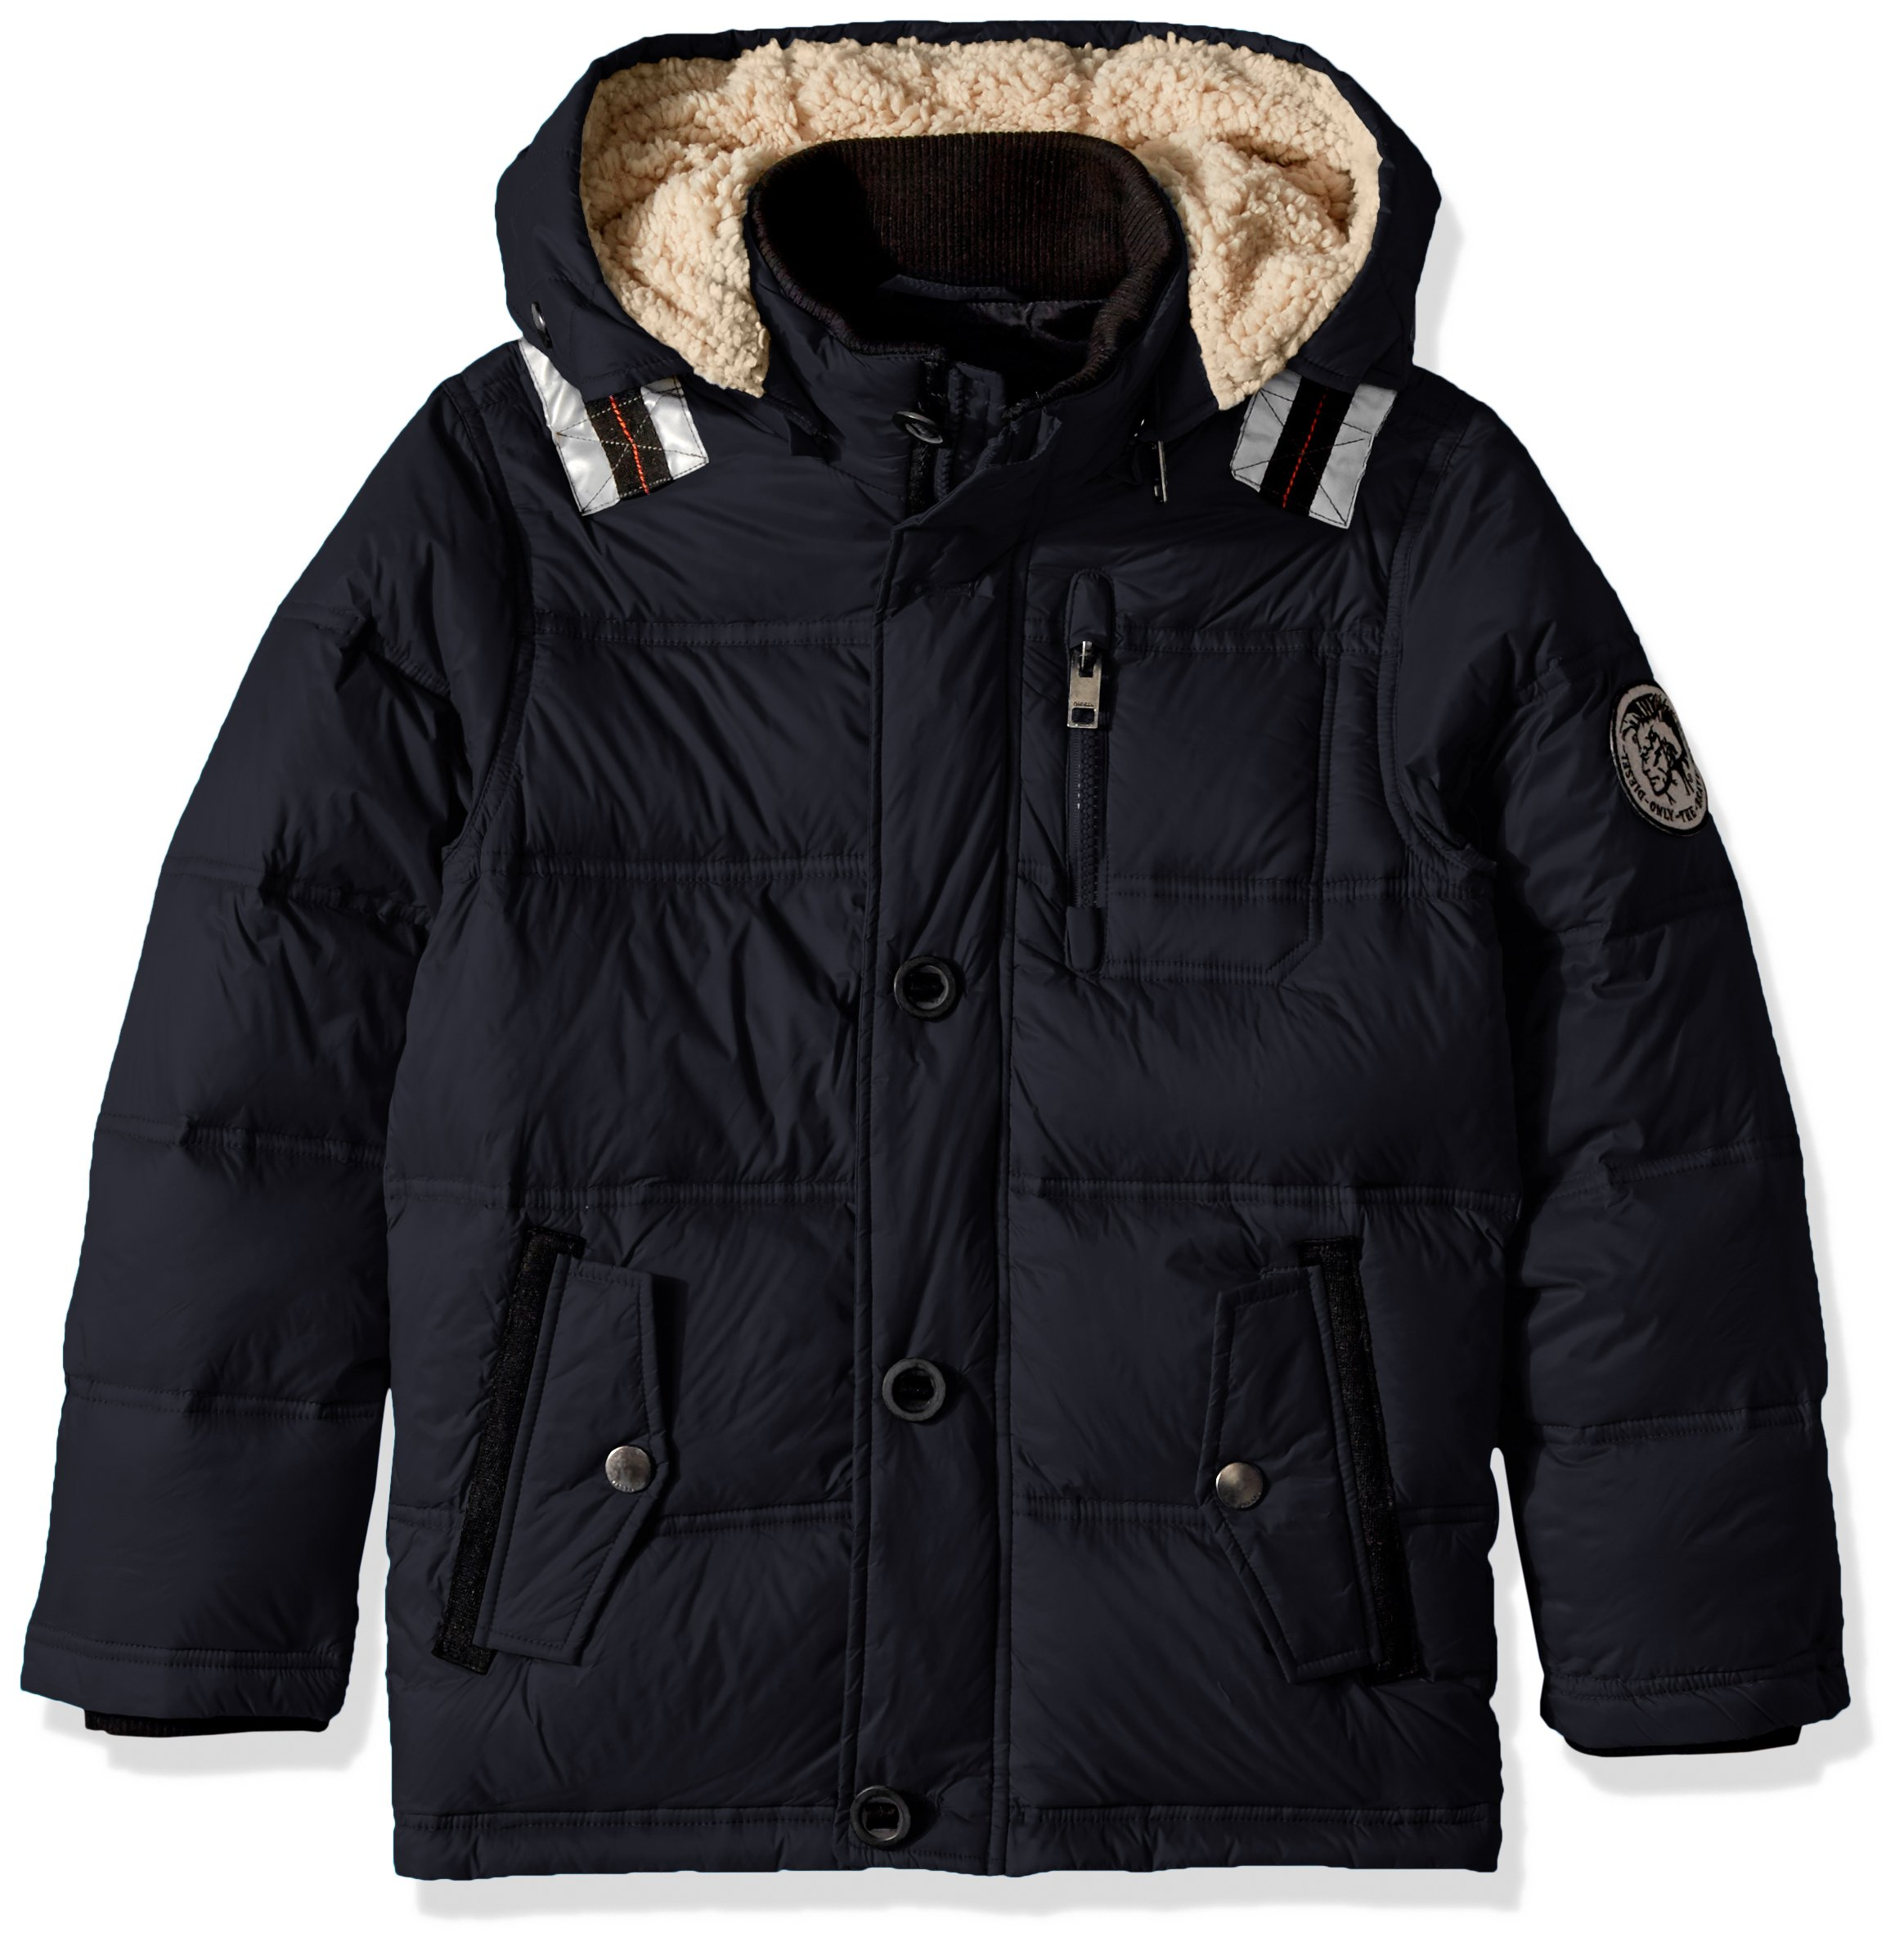 Diesel Boys' Little Outerwear Jacket (More Styles Available), Down Down Bubble/Black, 5/6